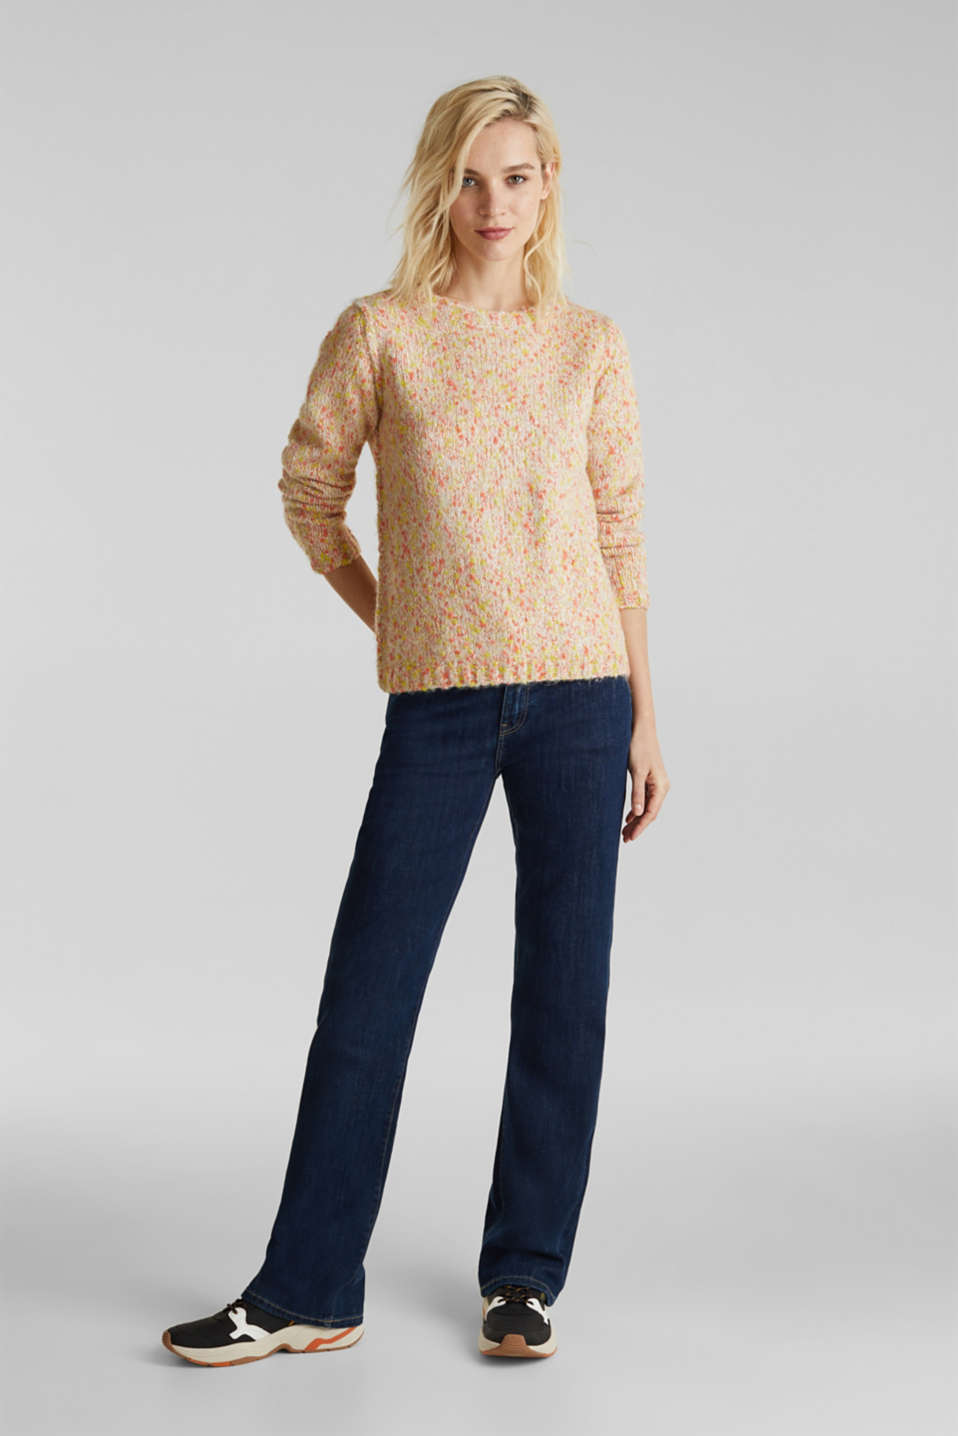 Wool blend: jumper with a dimpled texture, BEIGE, detail image number 1